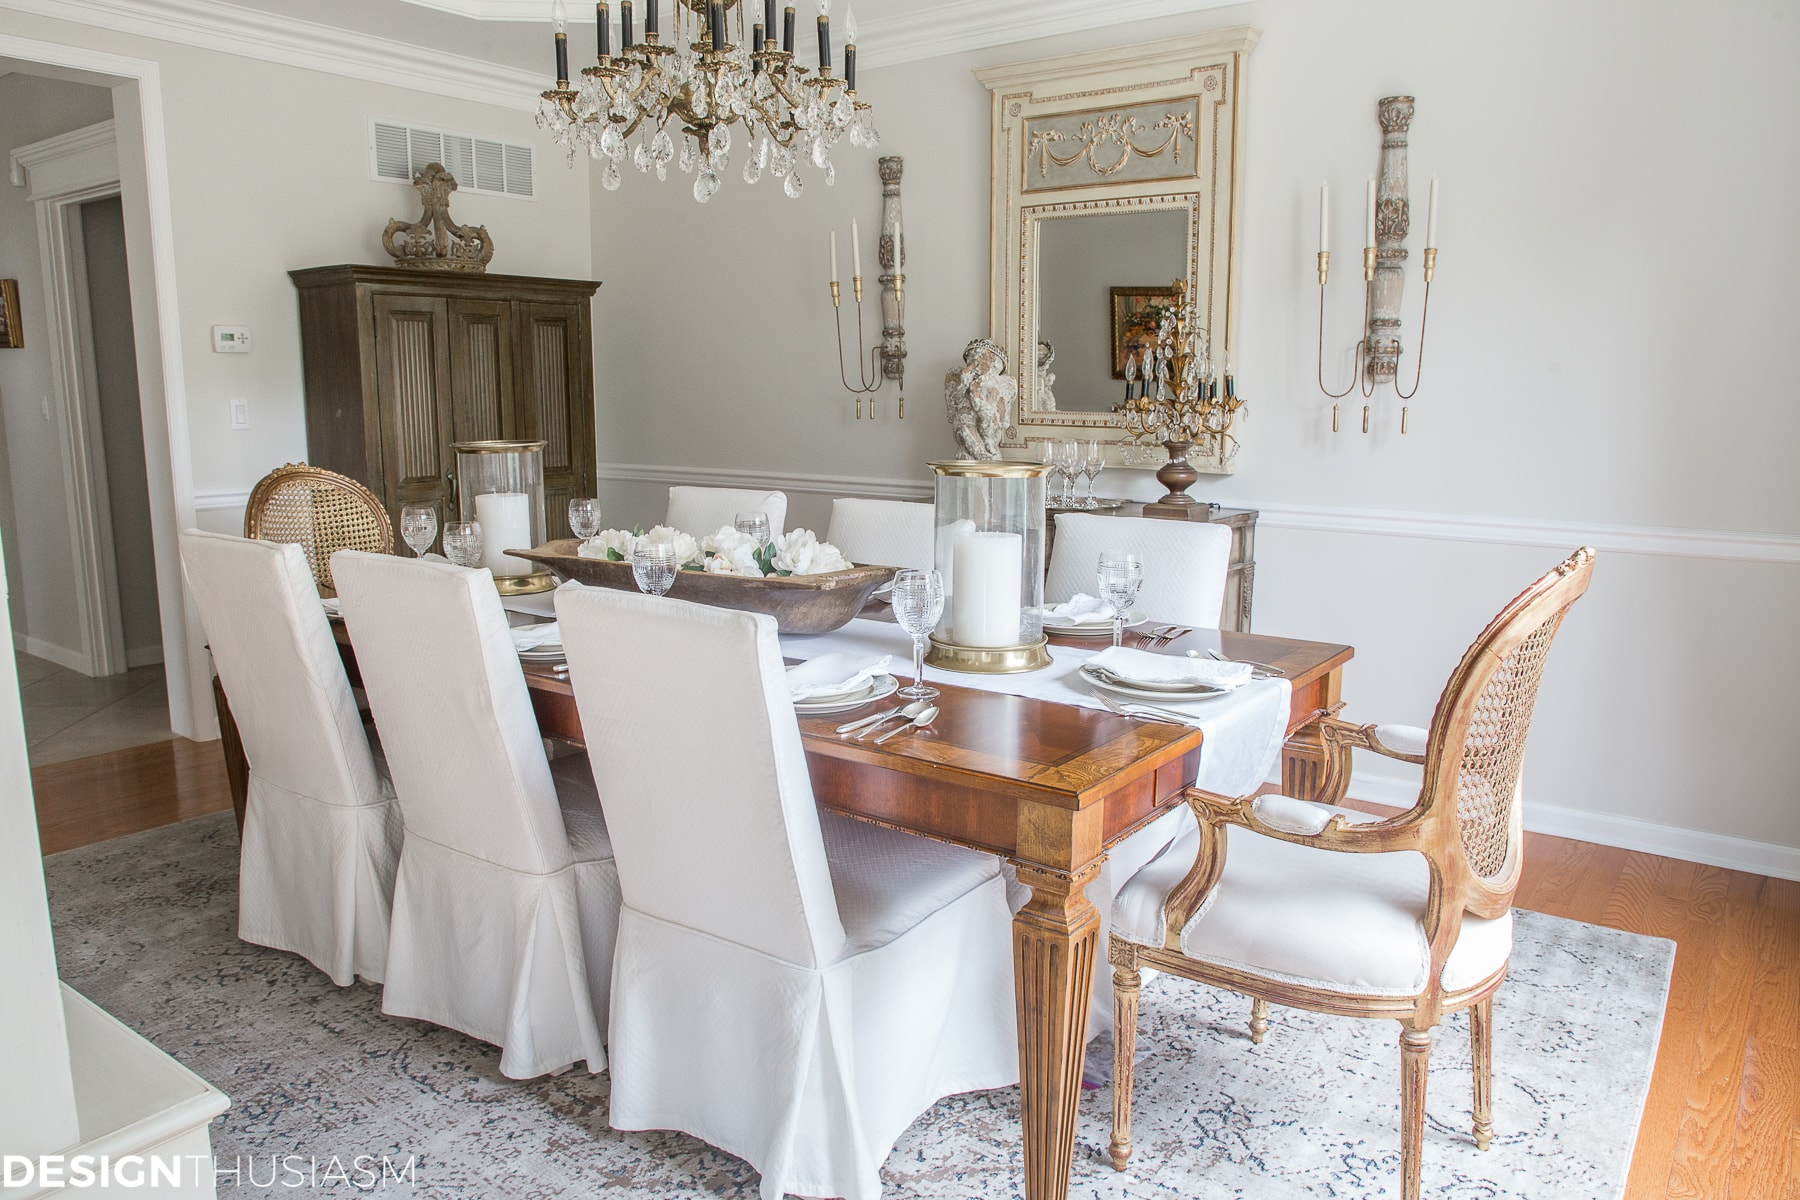 The evolution of a french country dining room from old school to modern